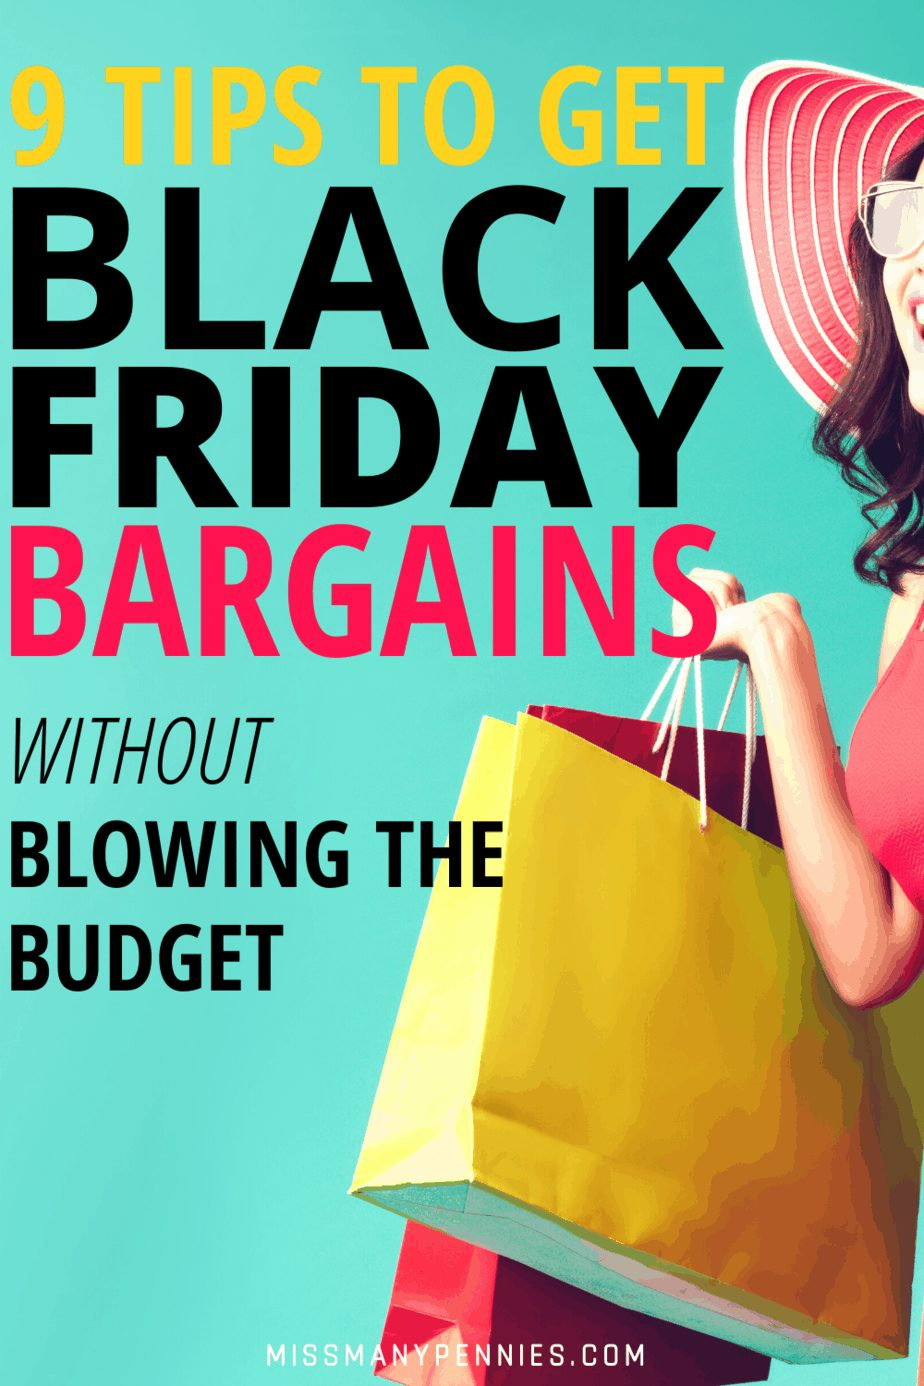 How to get the best Black Friday bargains without blowing the budget